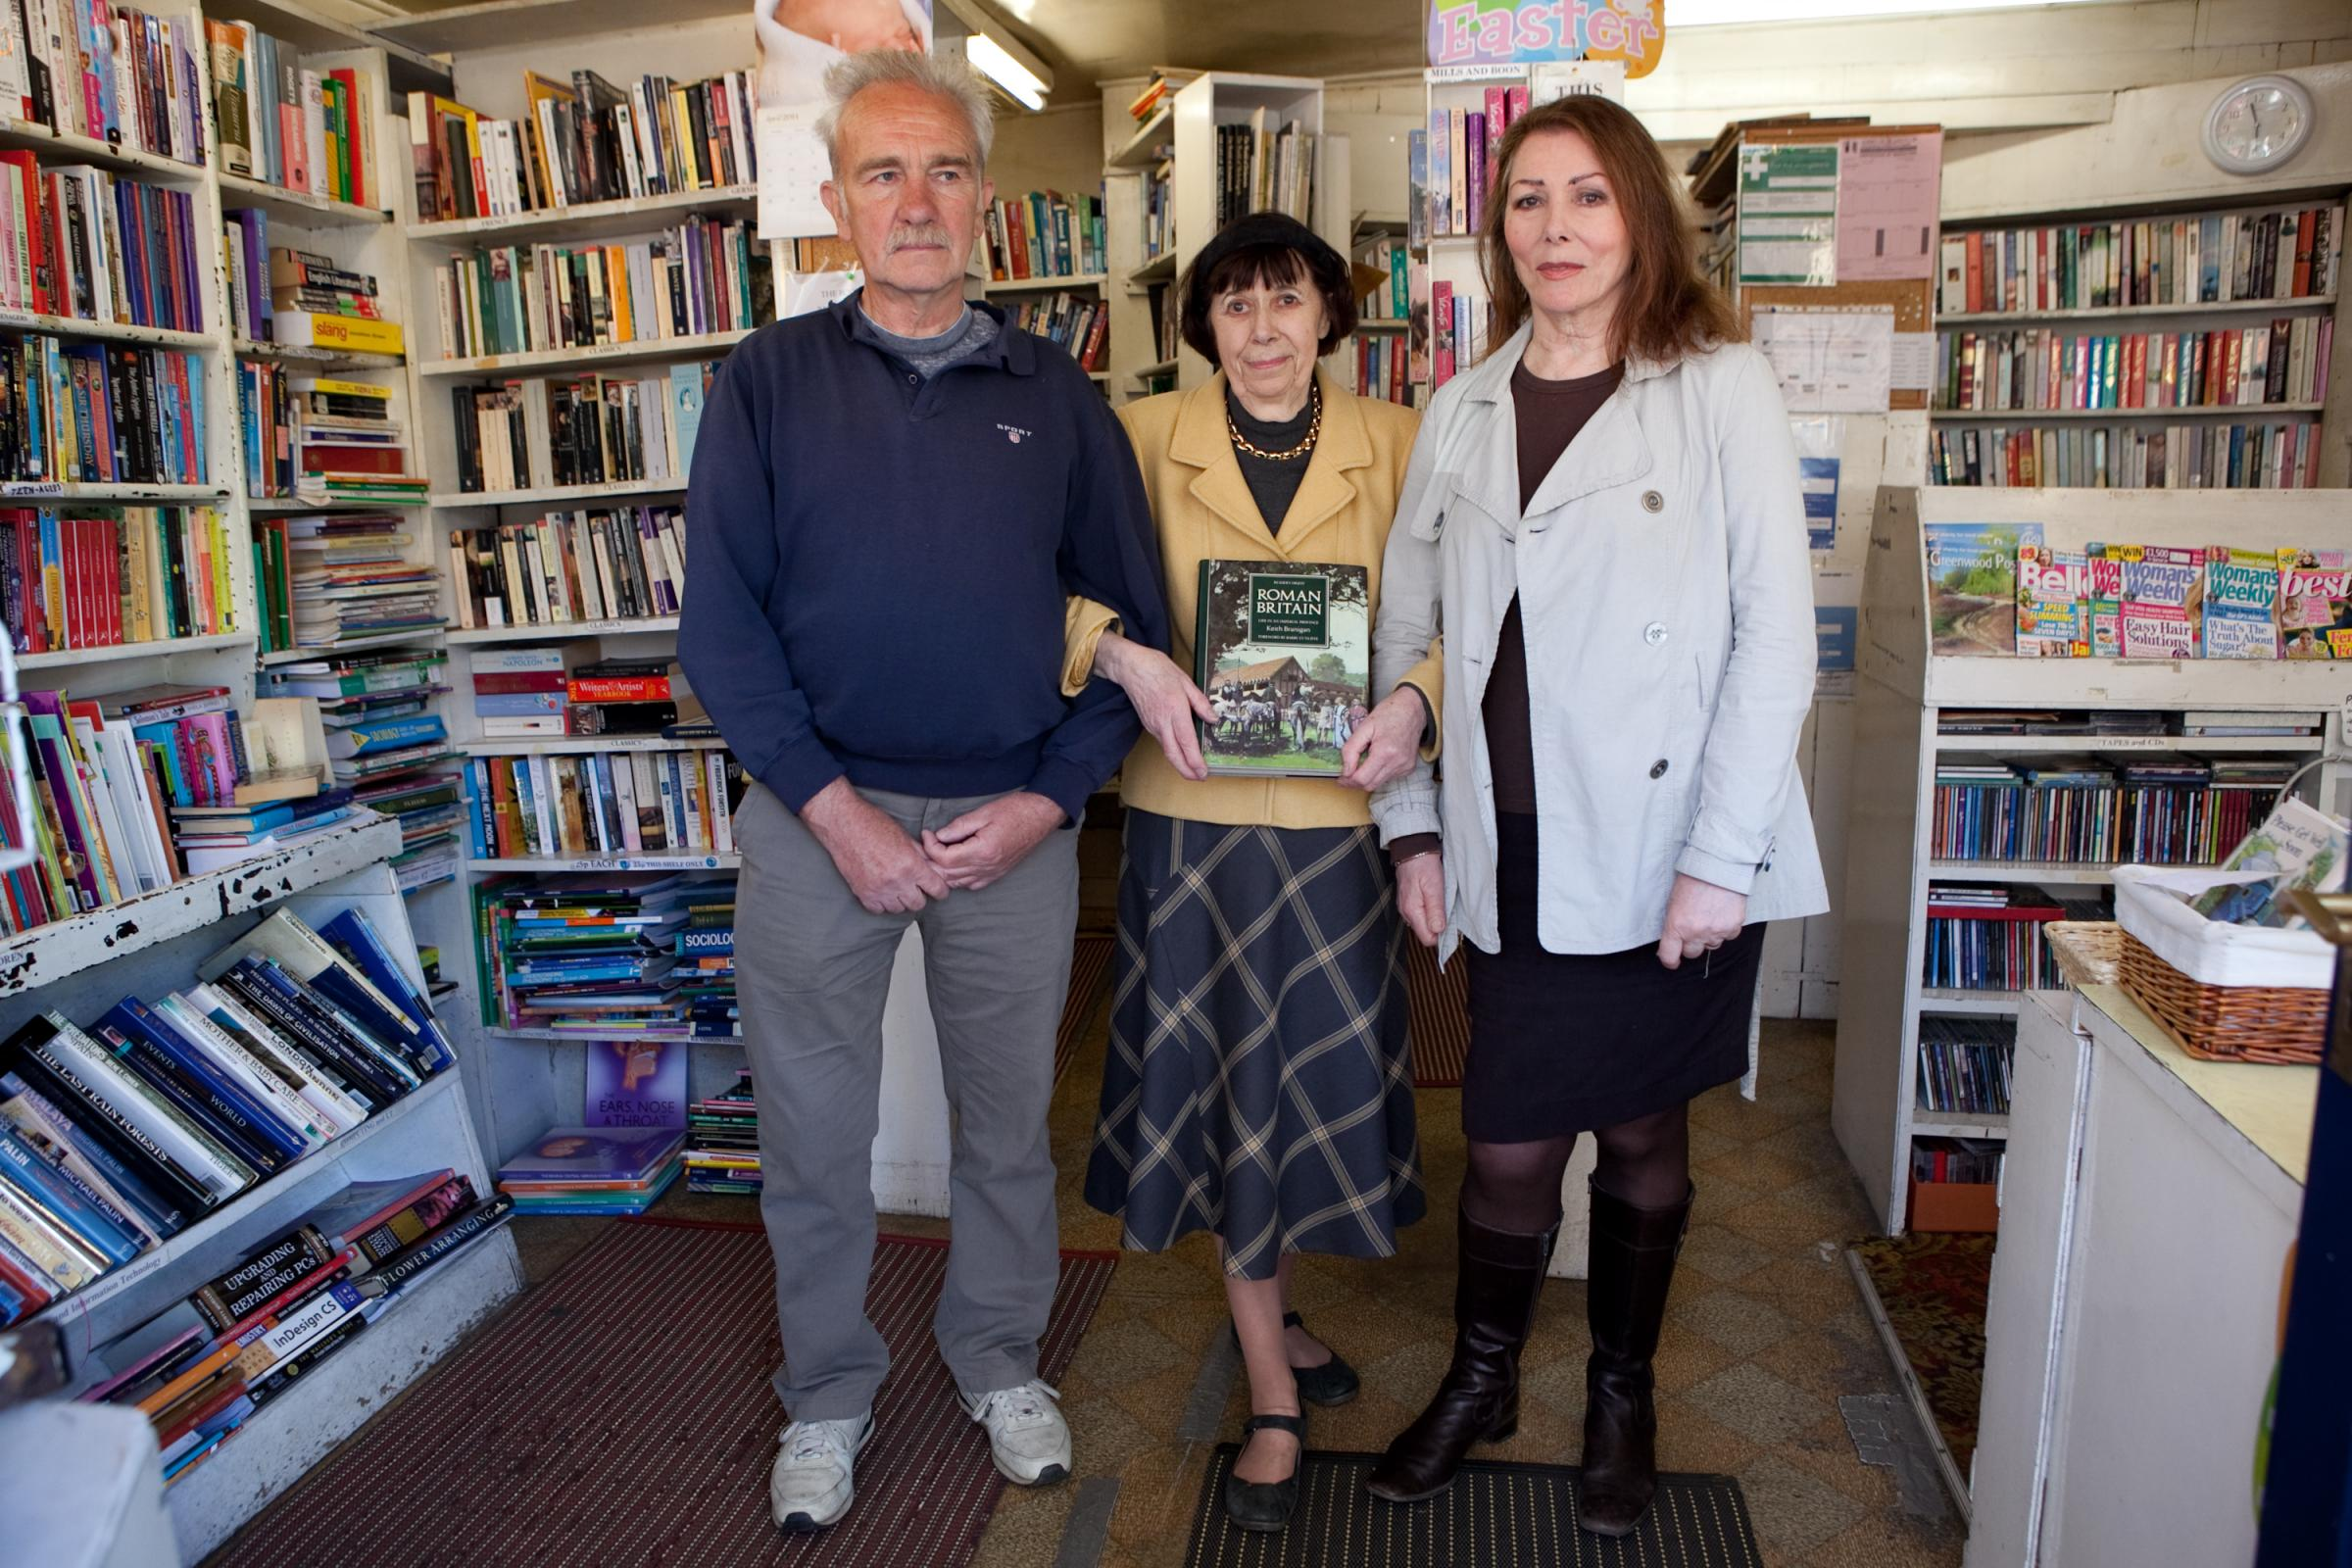 Happier times ahead: Ray Brown, Joy Mckie who has run the shop for 16 years and Actress Julie Bevan